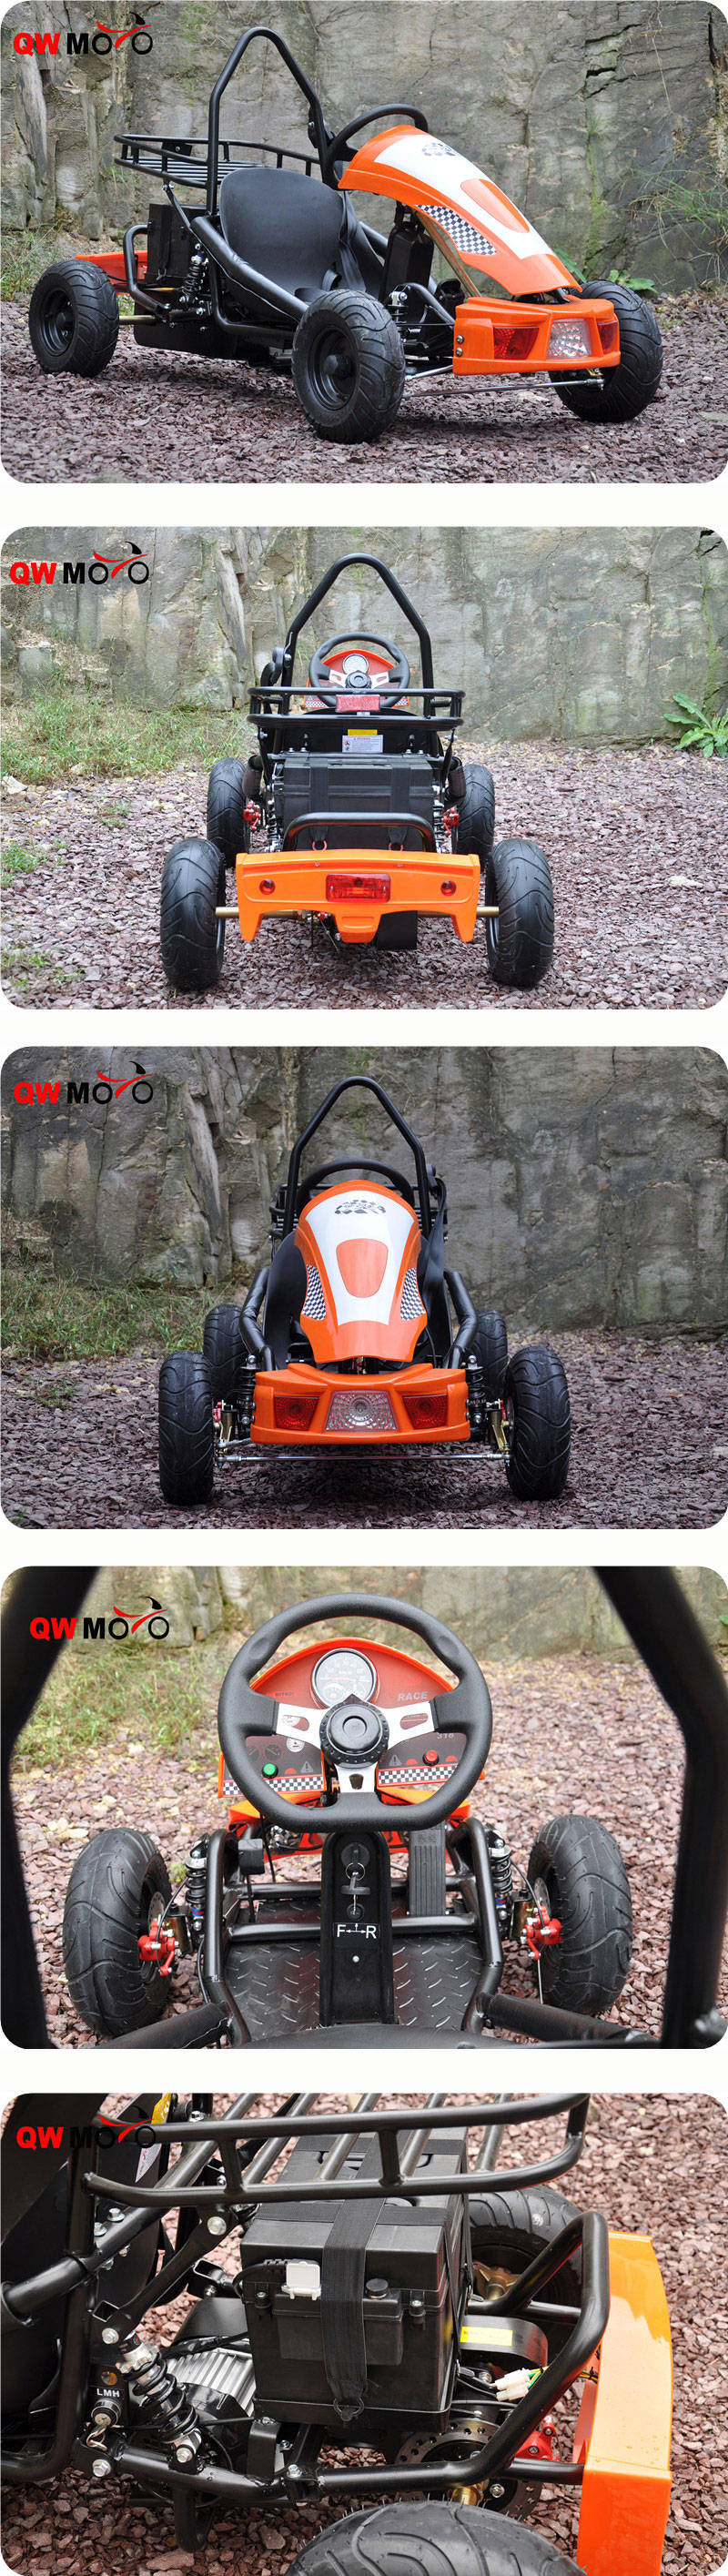 QWMOTO 2017 500W Brushless Upgrade Electric Kids Racing Go Kart 48V Battery Buggy Electric kids Racing go kart for sale